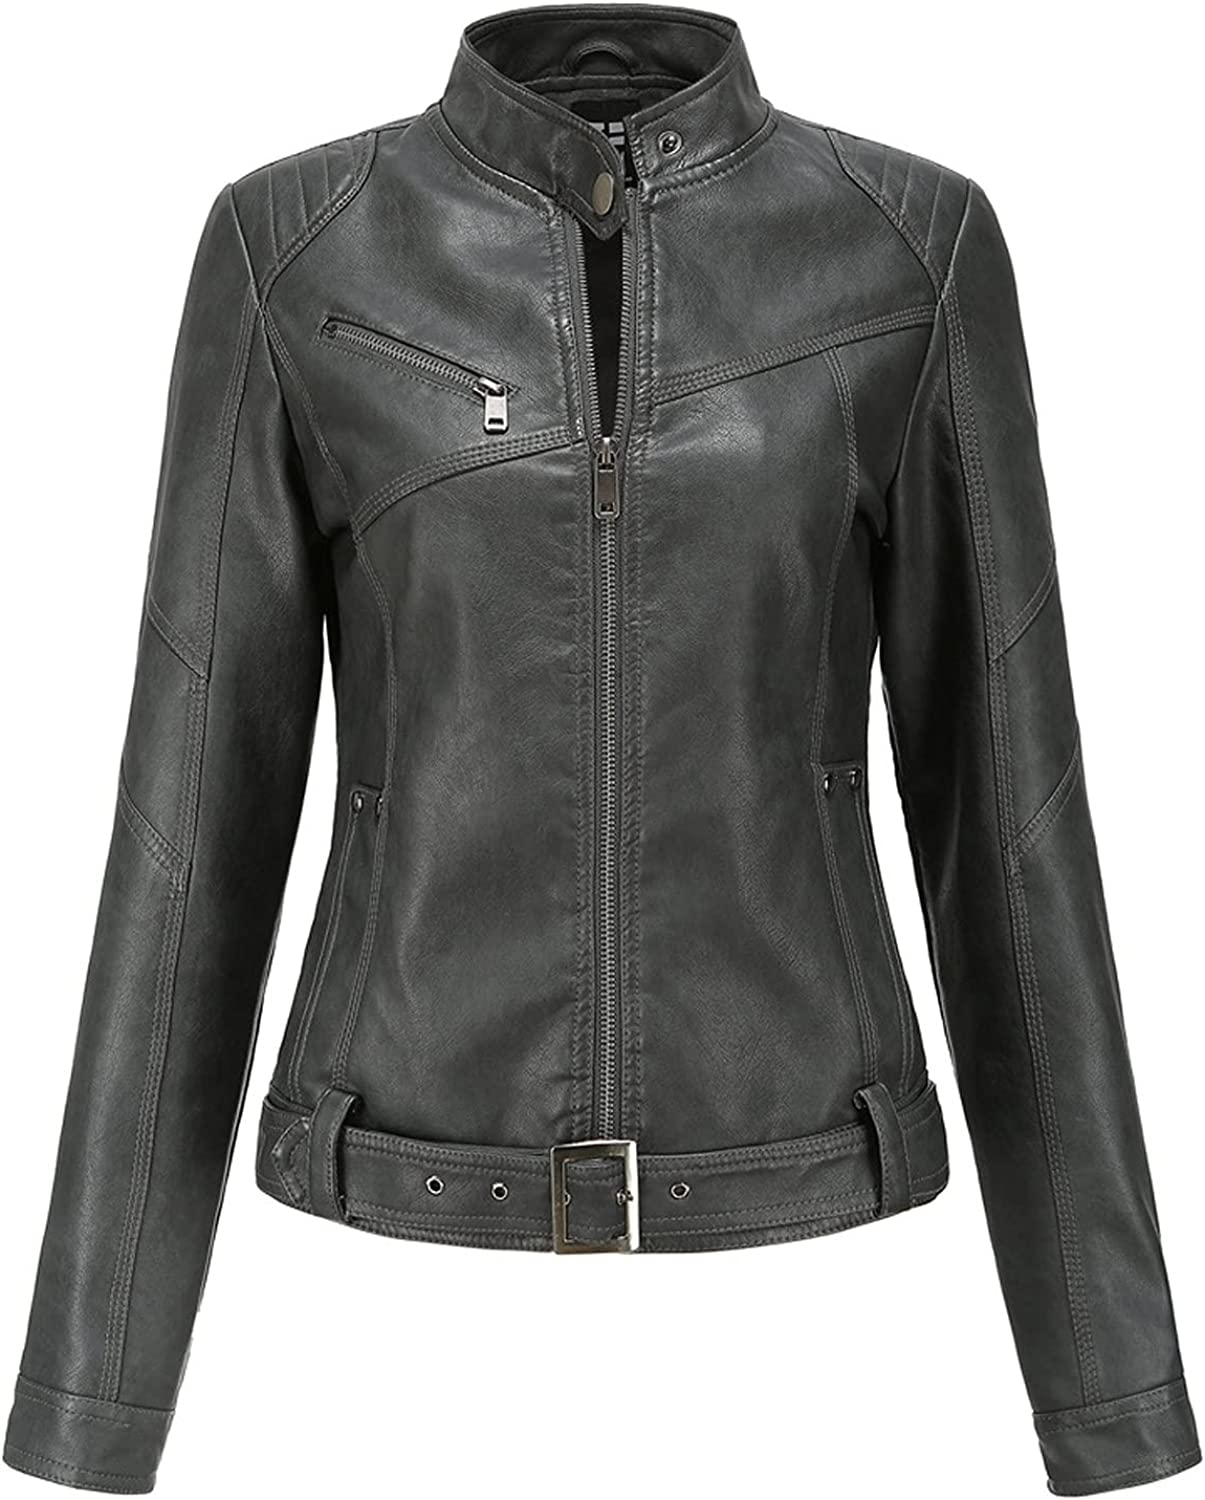 NIDOV Collared Leather Jacket for Women Moto Ranking TOP4 Biker Max 74% OFF Cropped Zippe